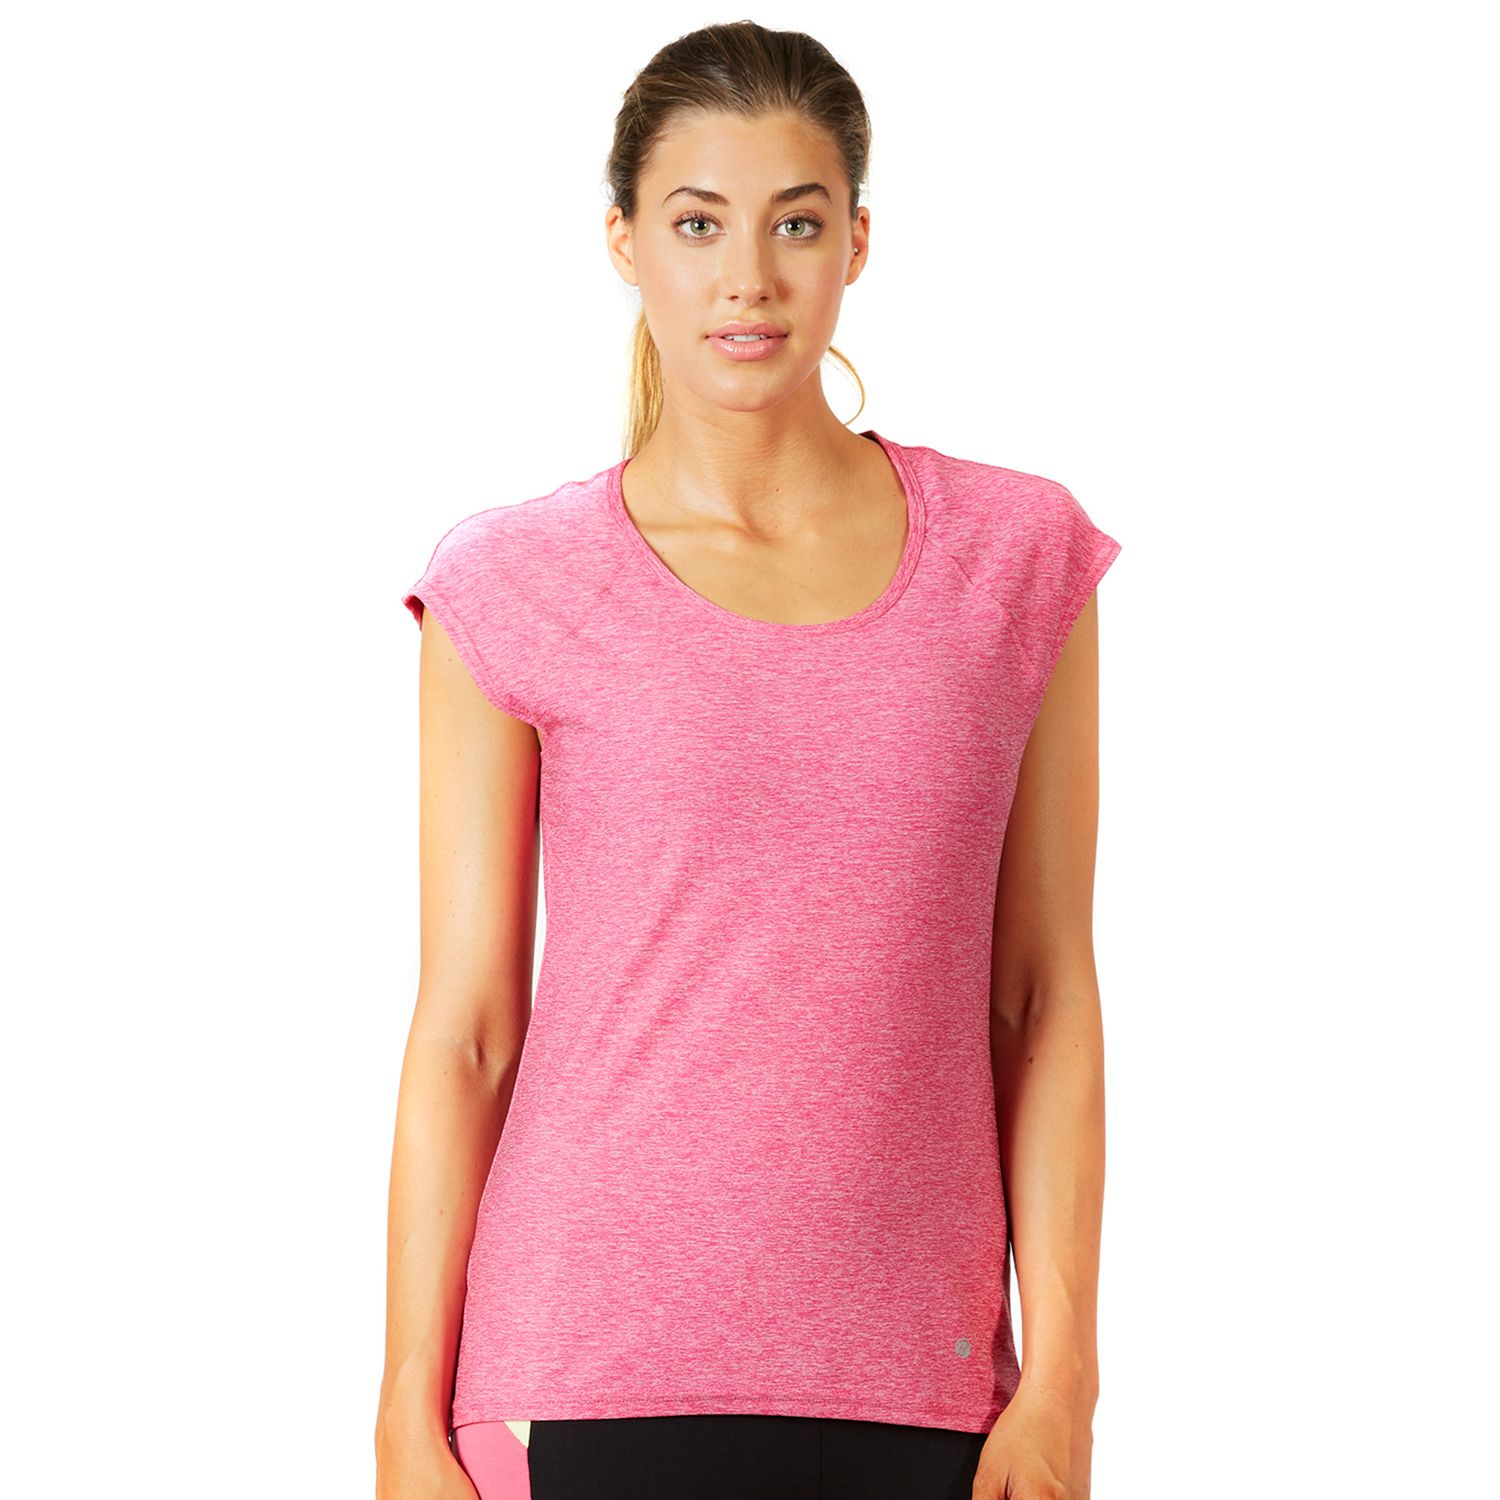 Womens Bally Total Fitness Ruched Back Workout Tee